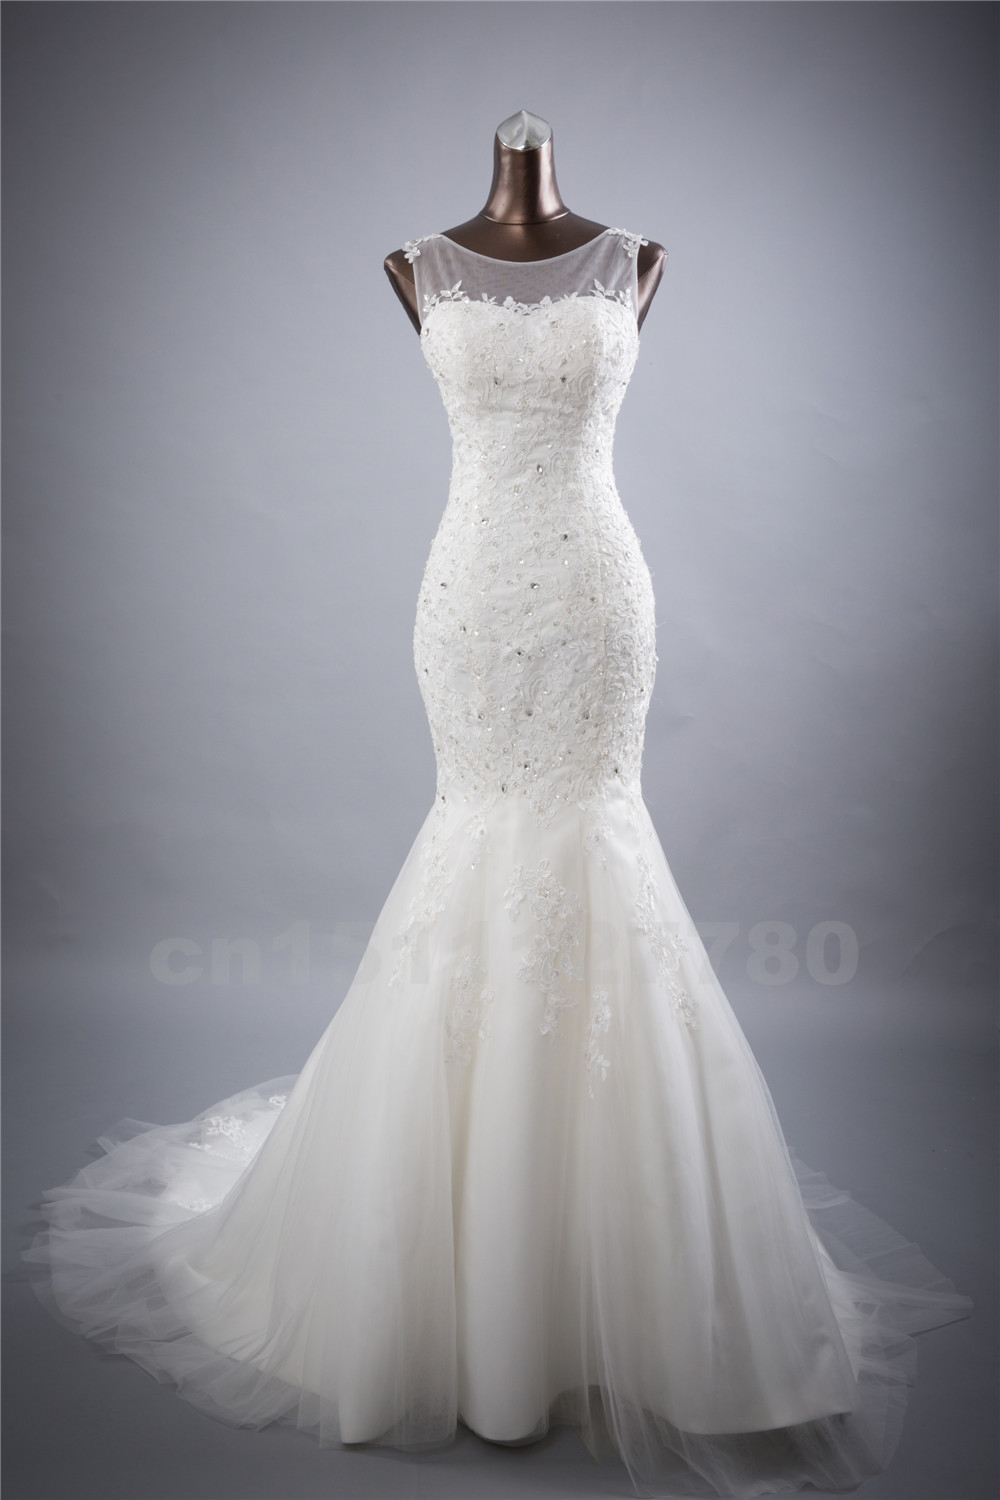 Bridal wedding gown real photos white lace mermaid wedding for Wedding dresses that are white